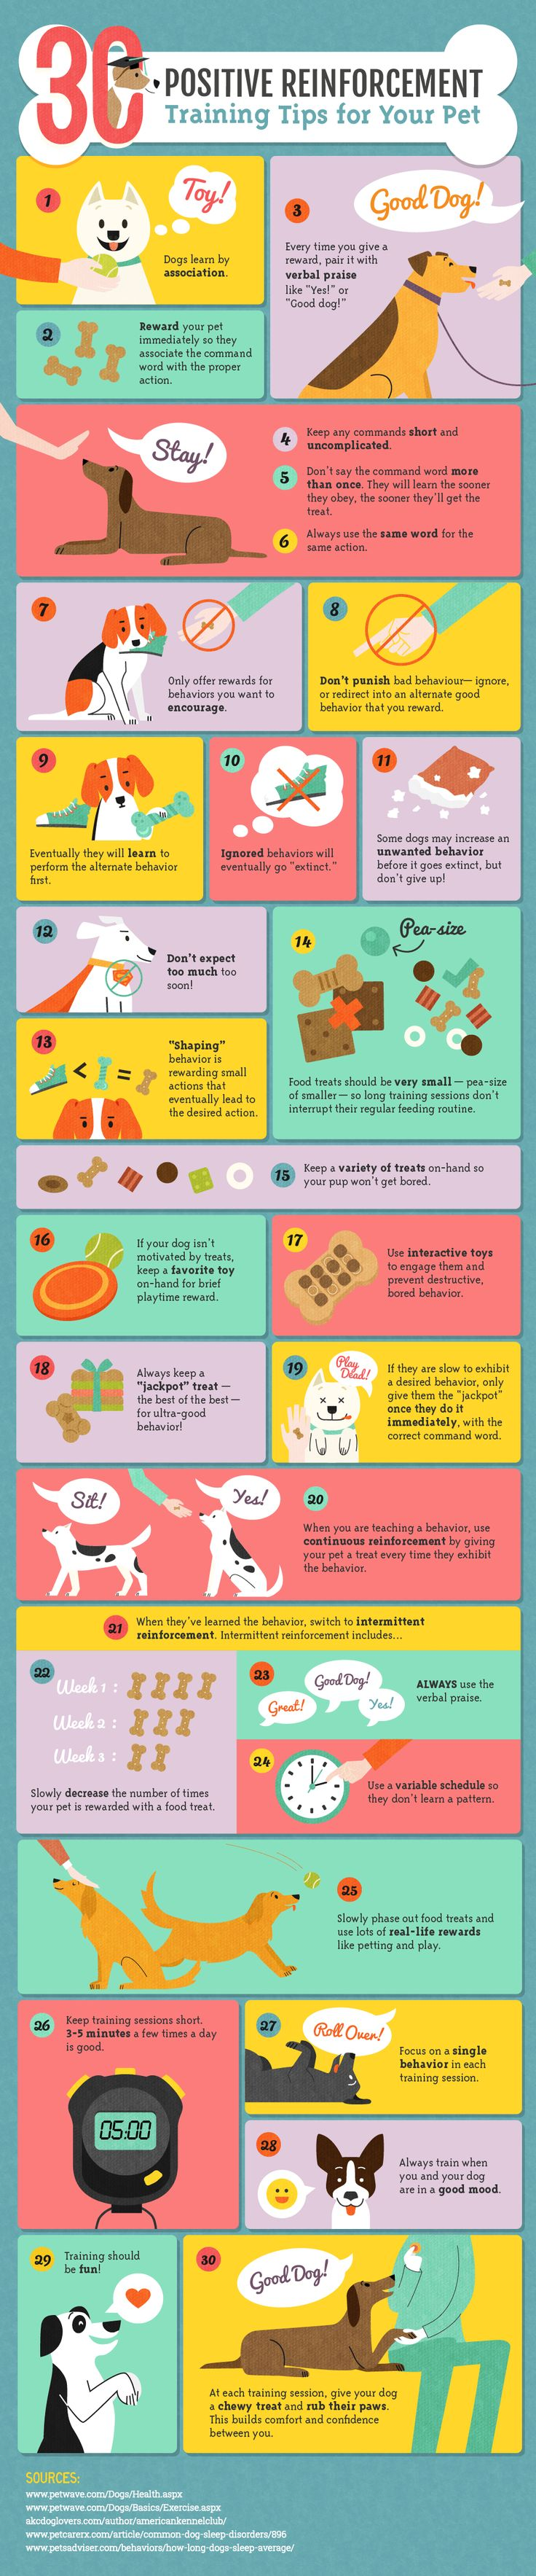 30 Positive Reinforcement Training Tips for Dogs